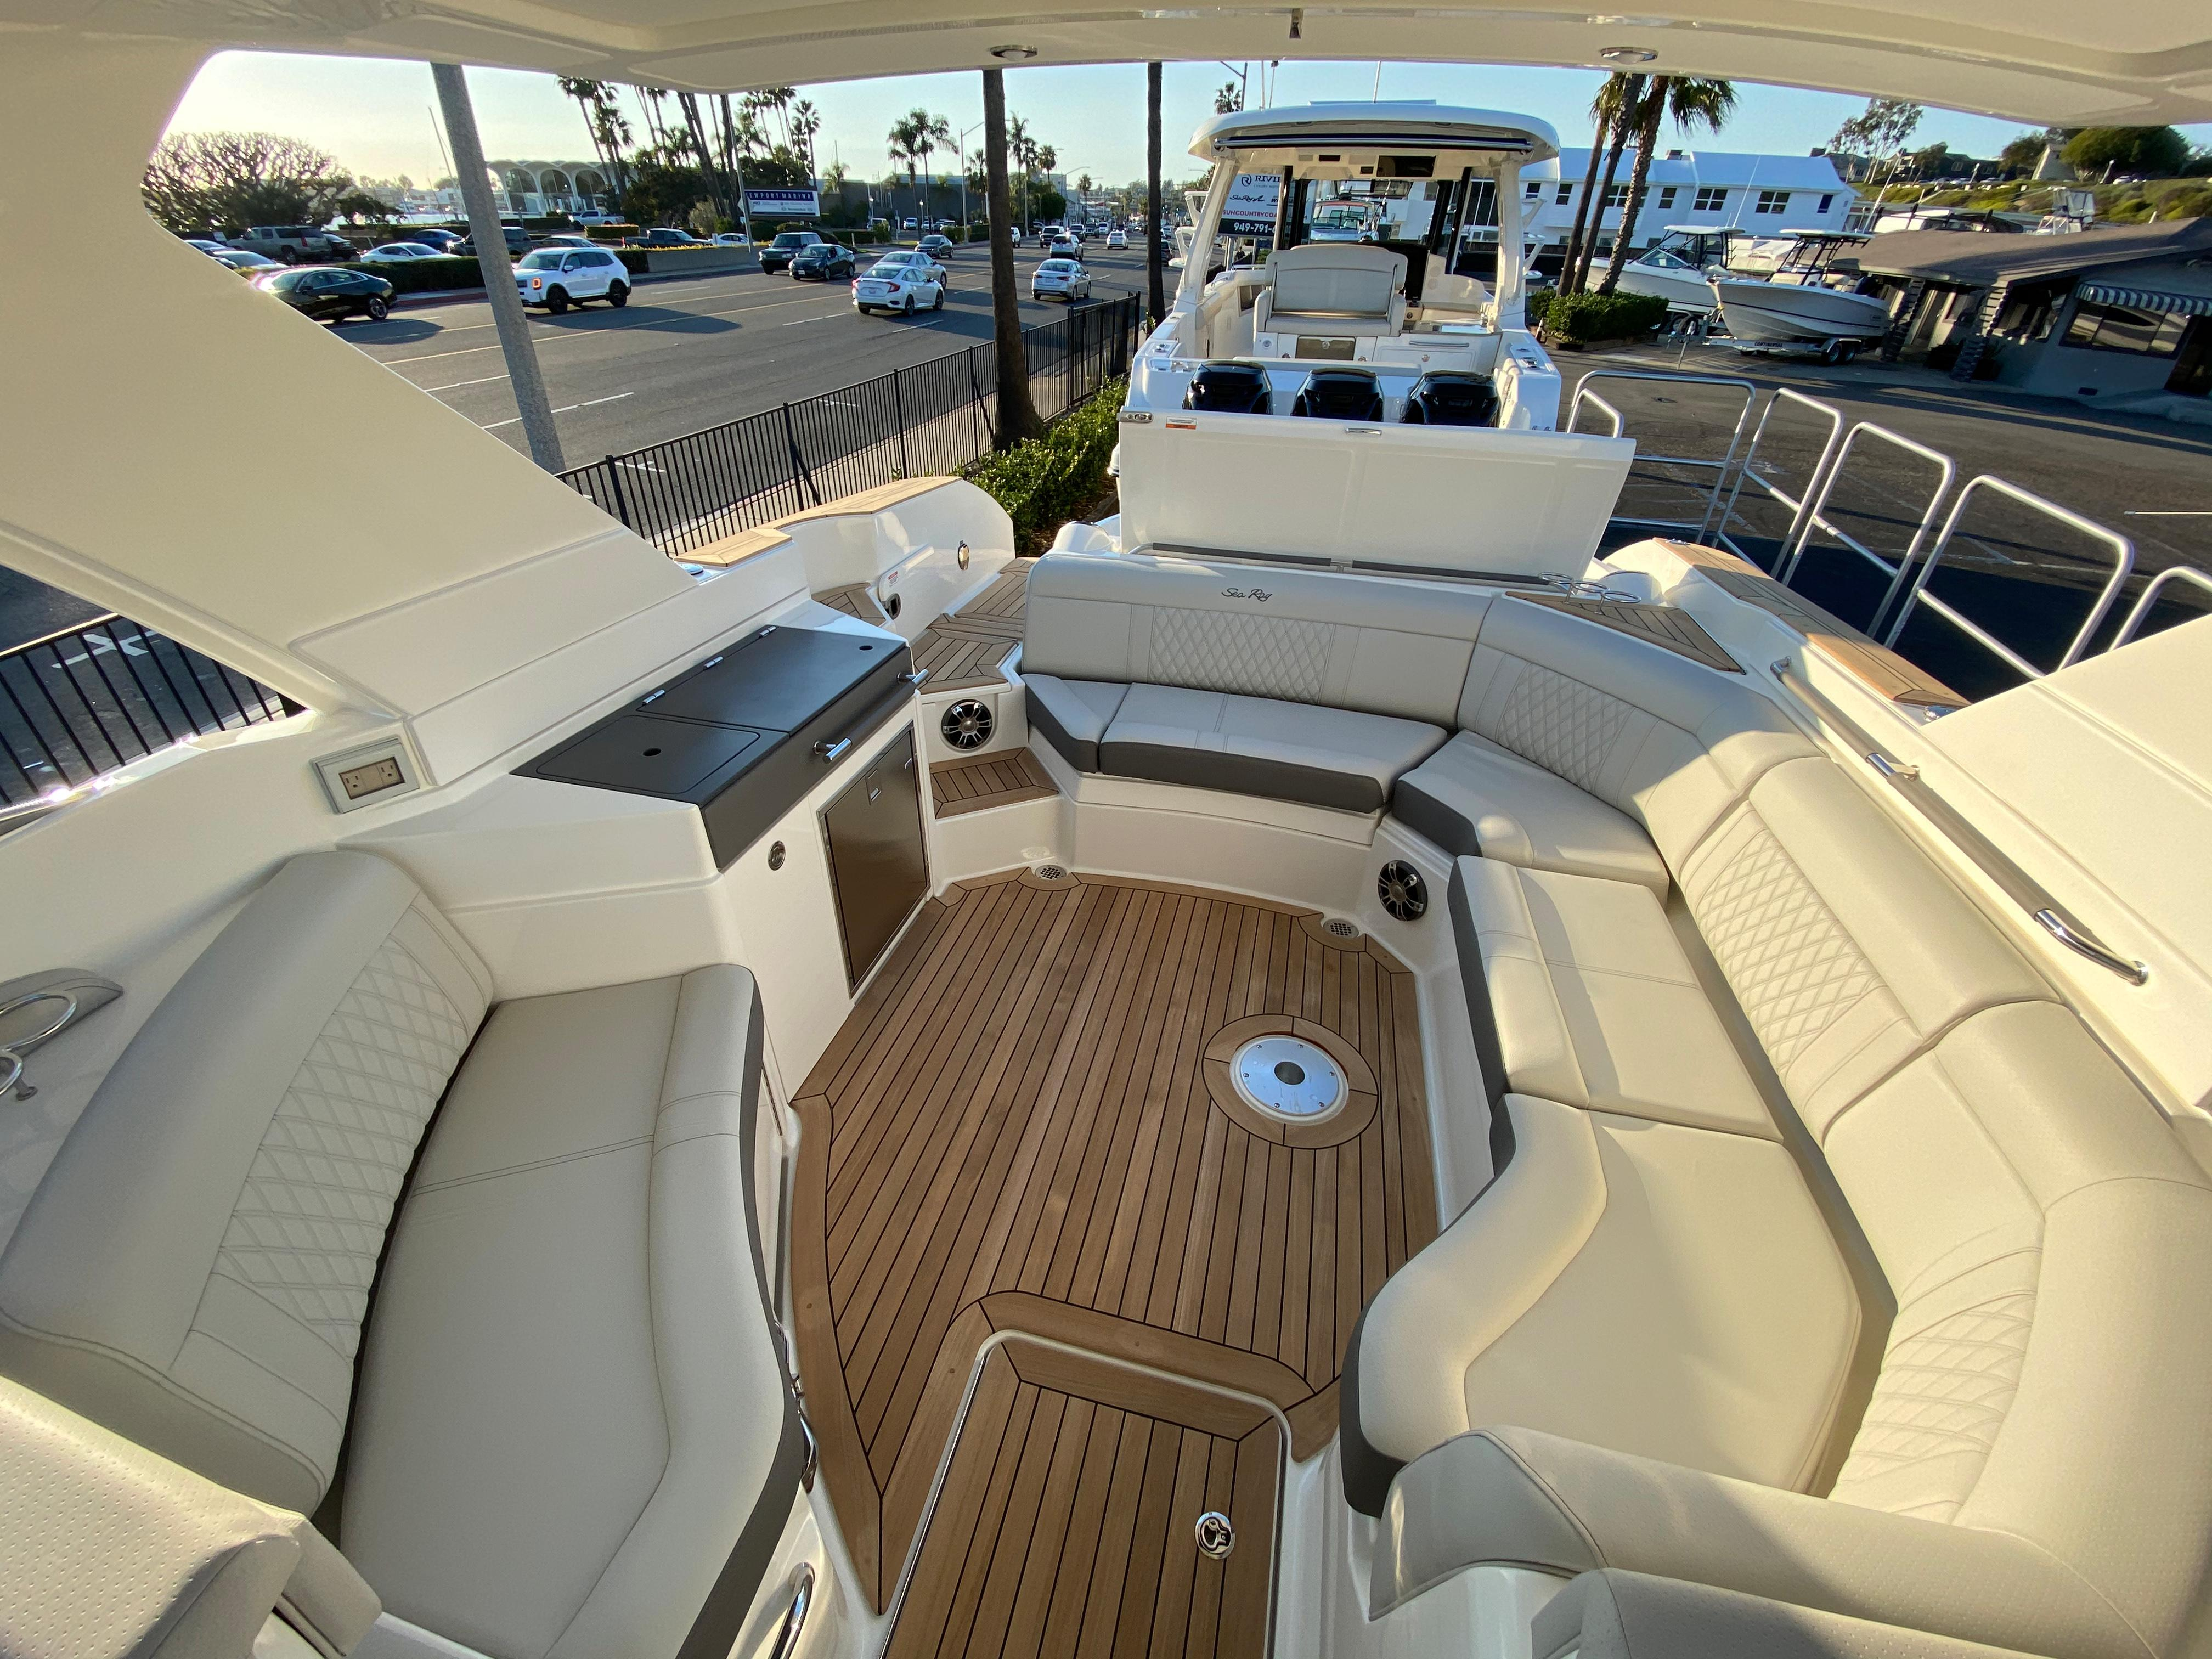 2021 Sea Ray SLX 350 #S1688K inventory image at Sun Country Coastal in Newport Beach